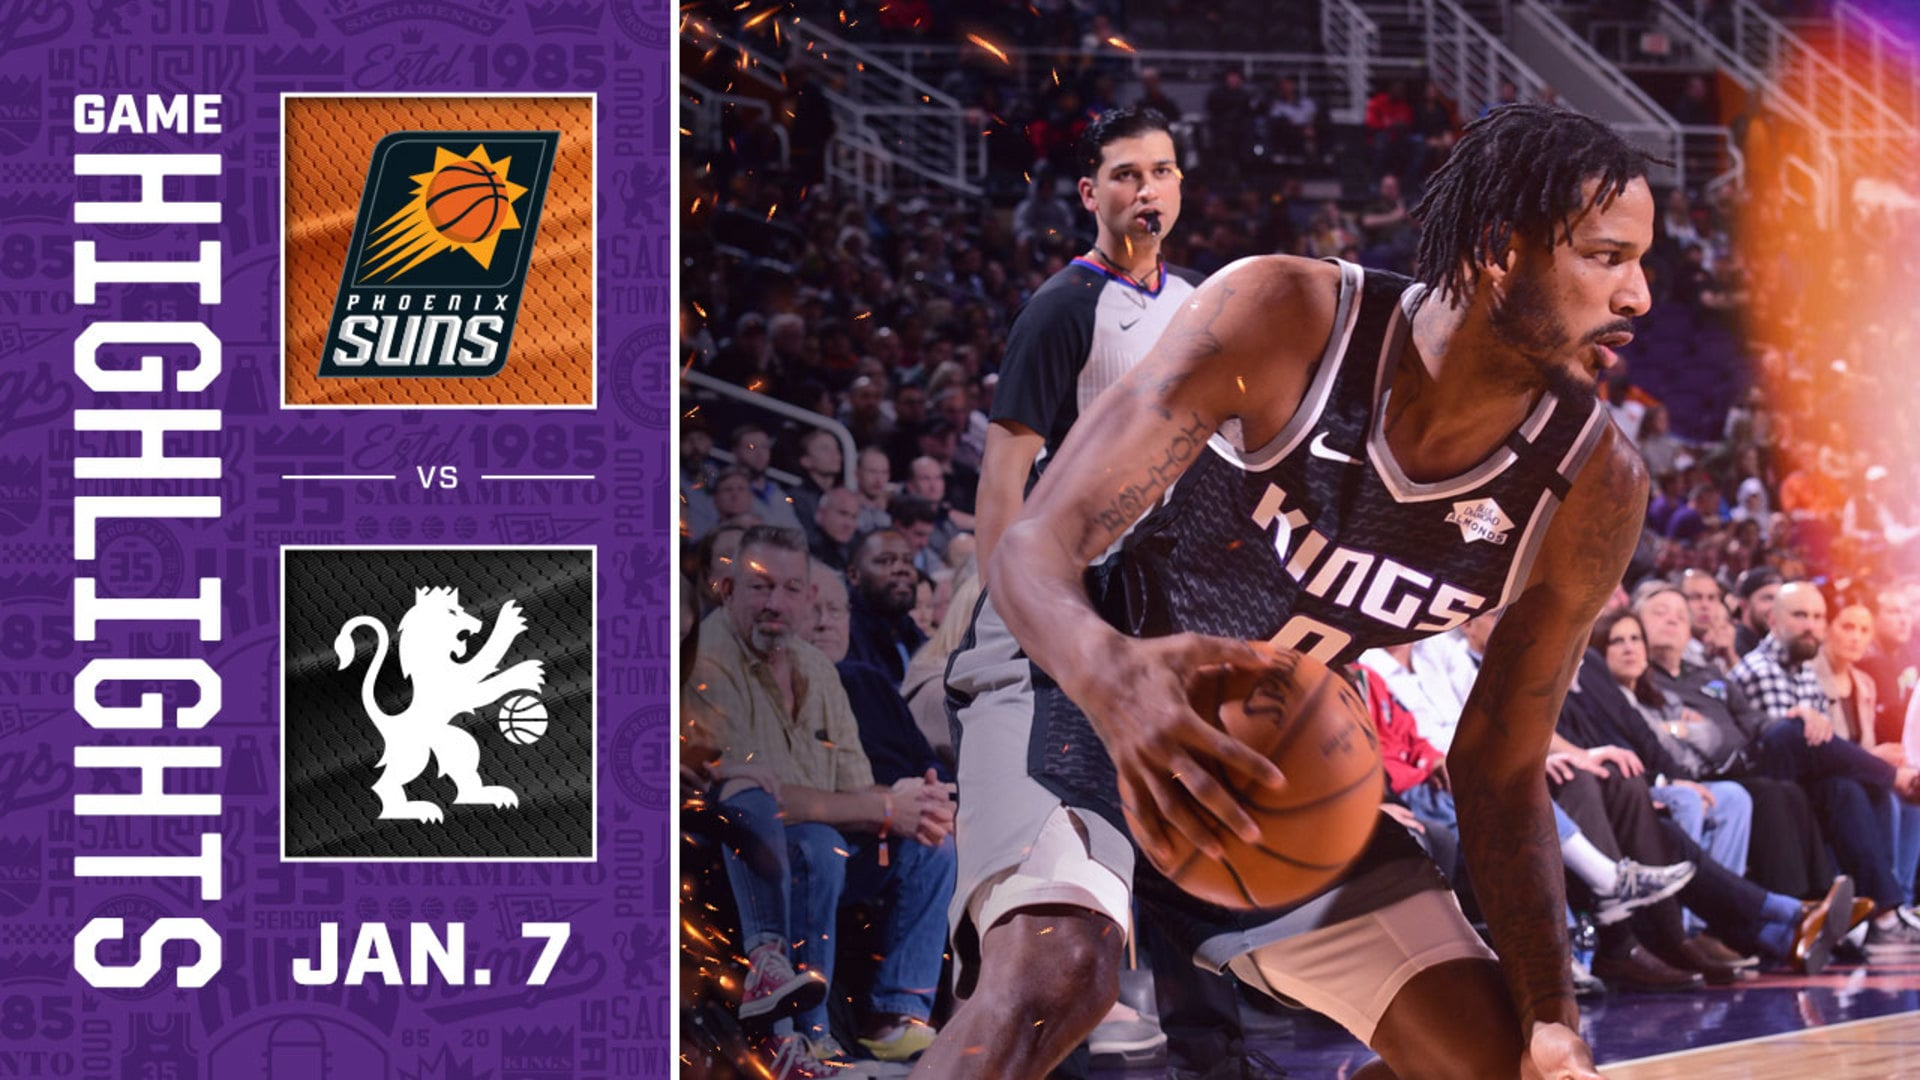 COMEBACK! Kings Erase 21 Point Deficit | Kings vs Suns 1.7.20